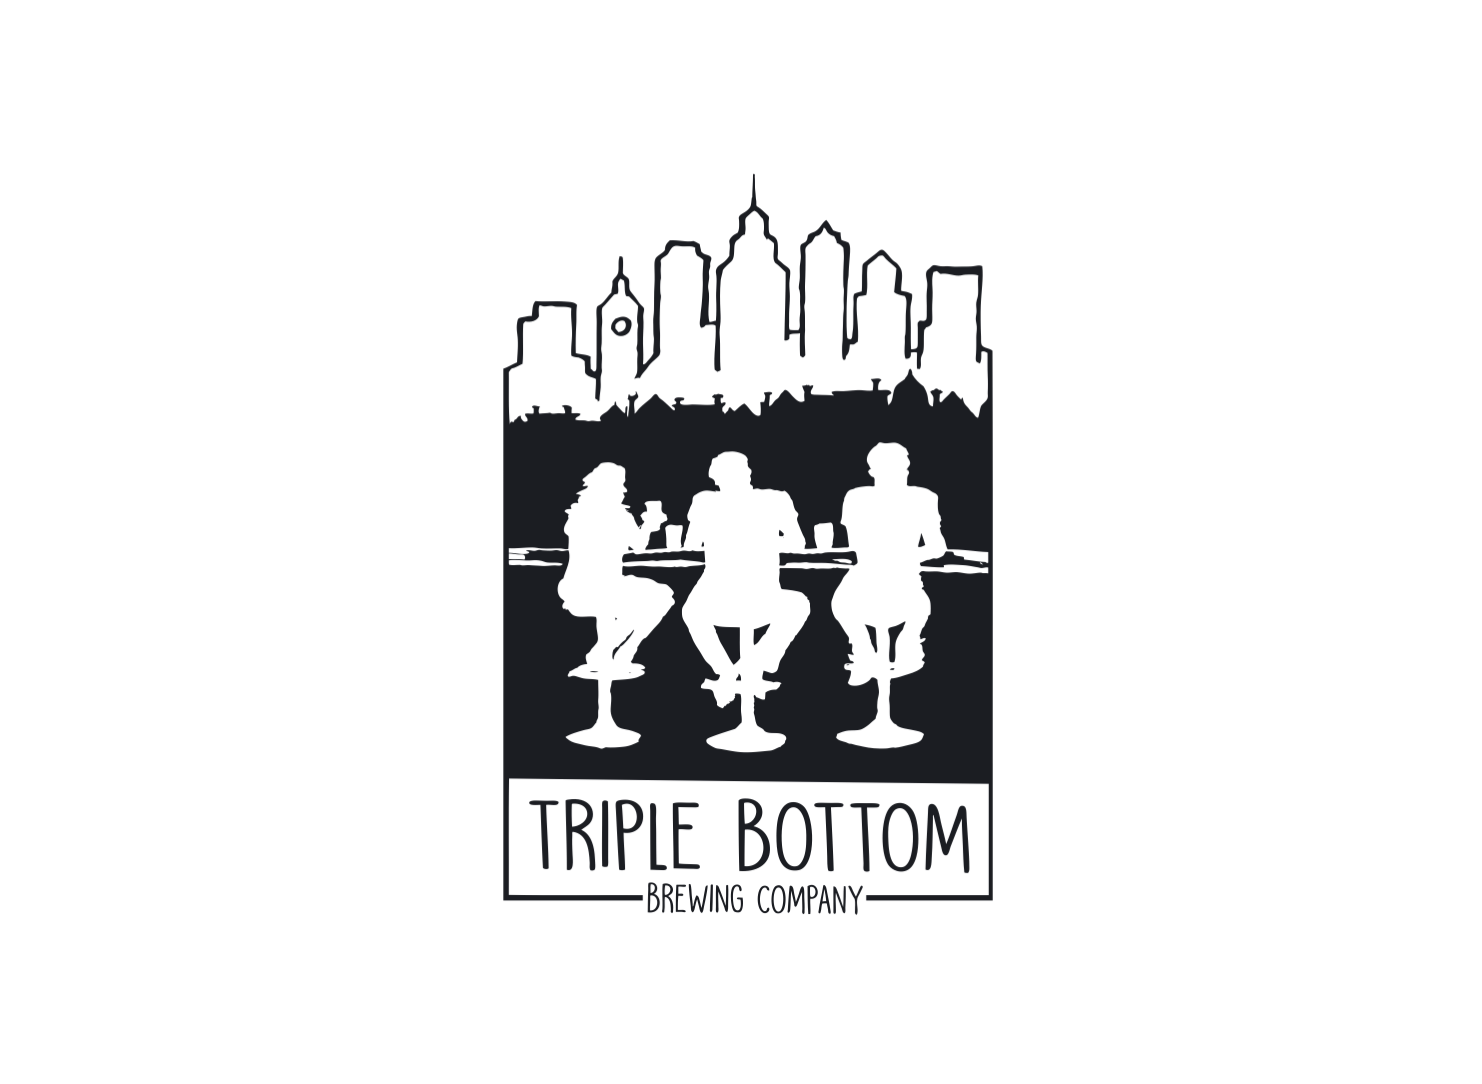 TRIPLE BOTTOM BREWING CO.